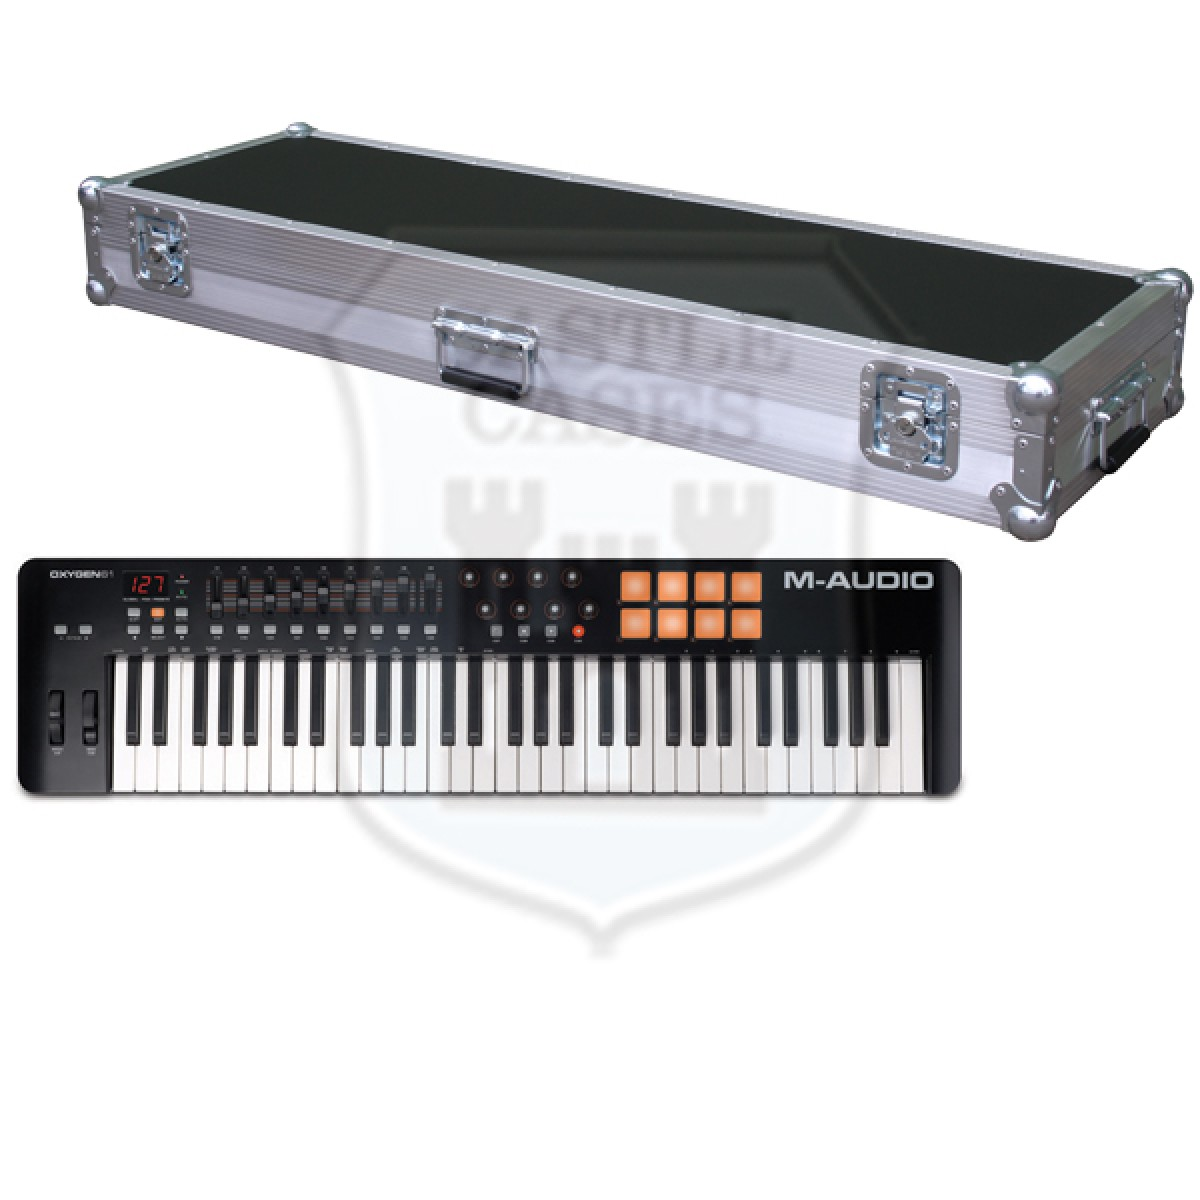 M-Audio Oxygen 61 MK IV Flightcase